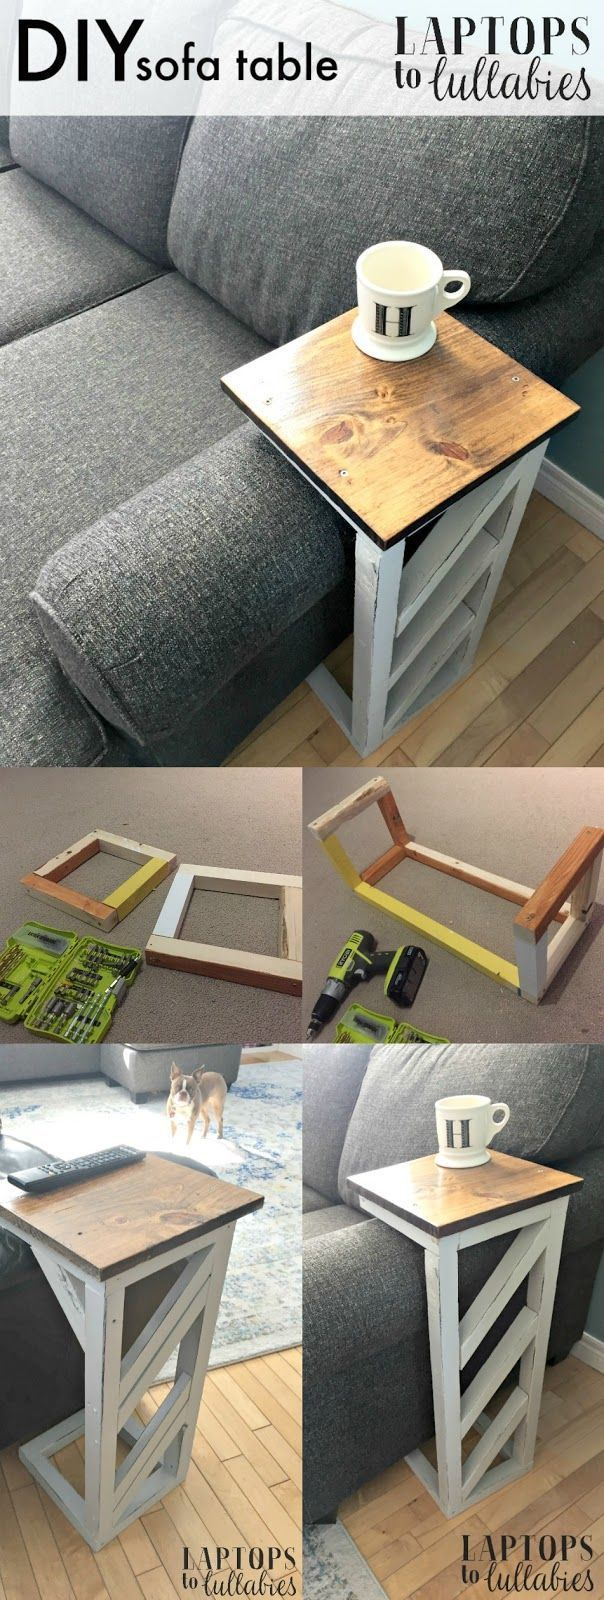 DIY Life Hacks Crafts : Laptops to Lullabies: Easy DIY sofa tables